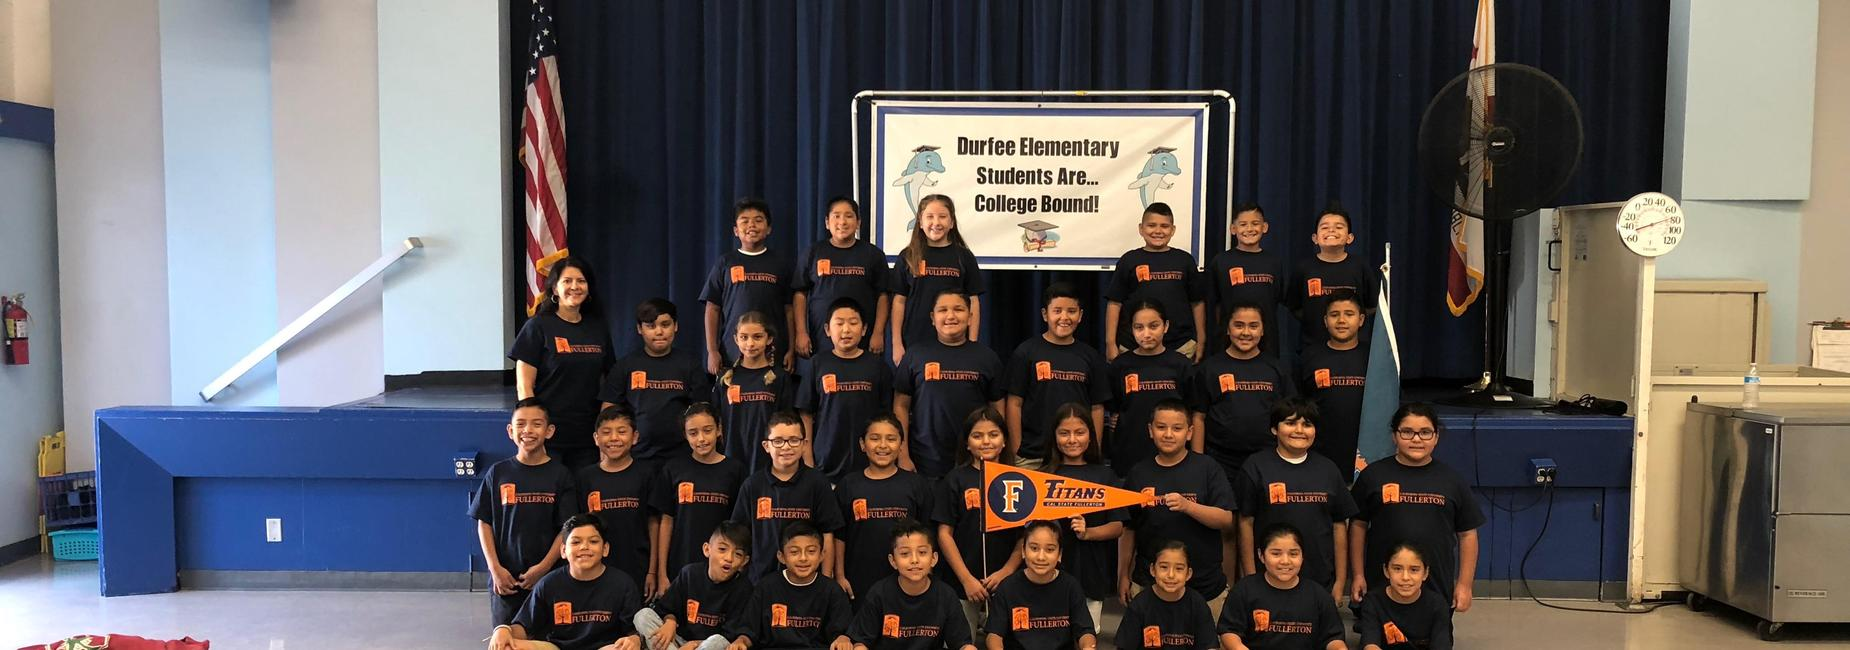 Students with Cal State Fullerton College Shirts